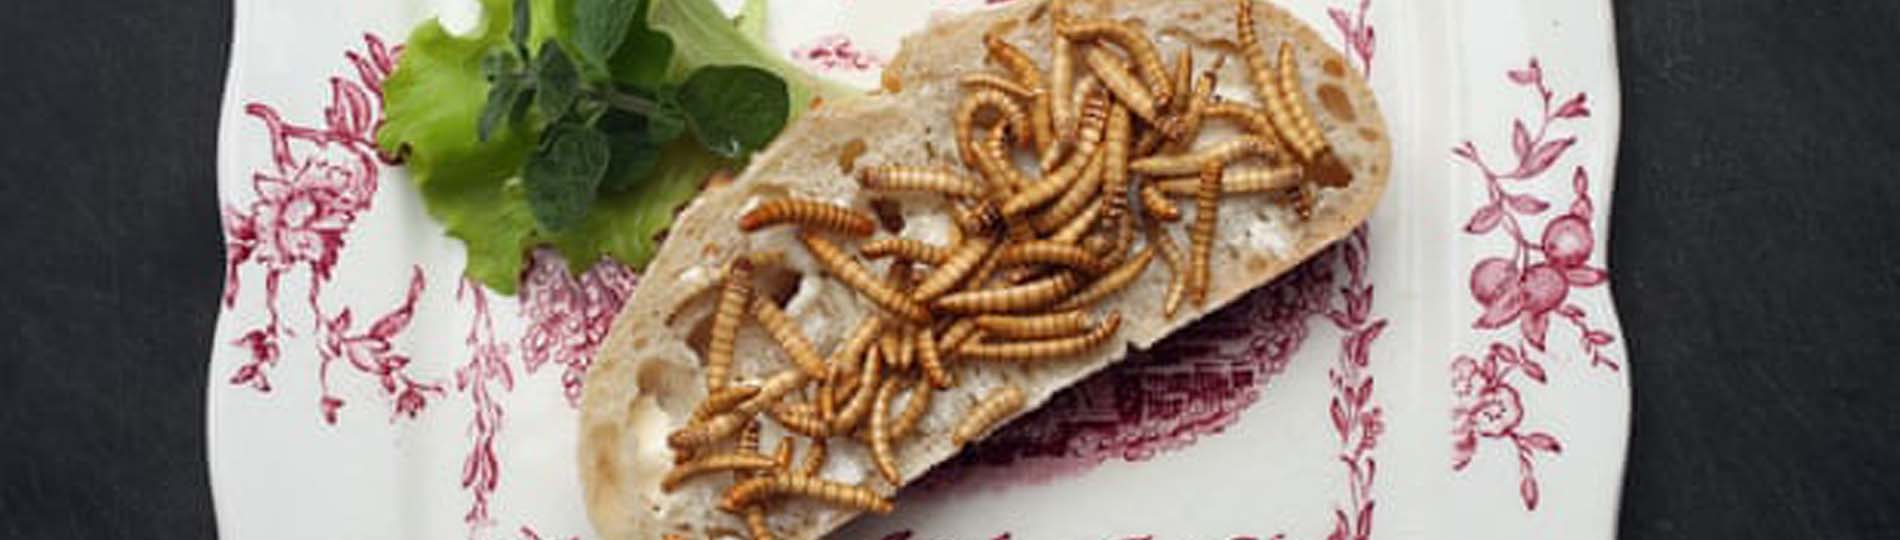 Edible insects set to be approved by EU in 'breakthrough moment'